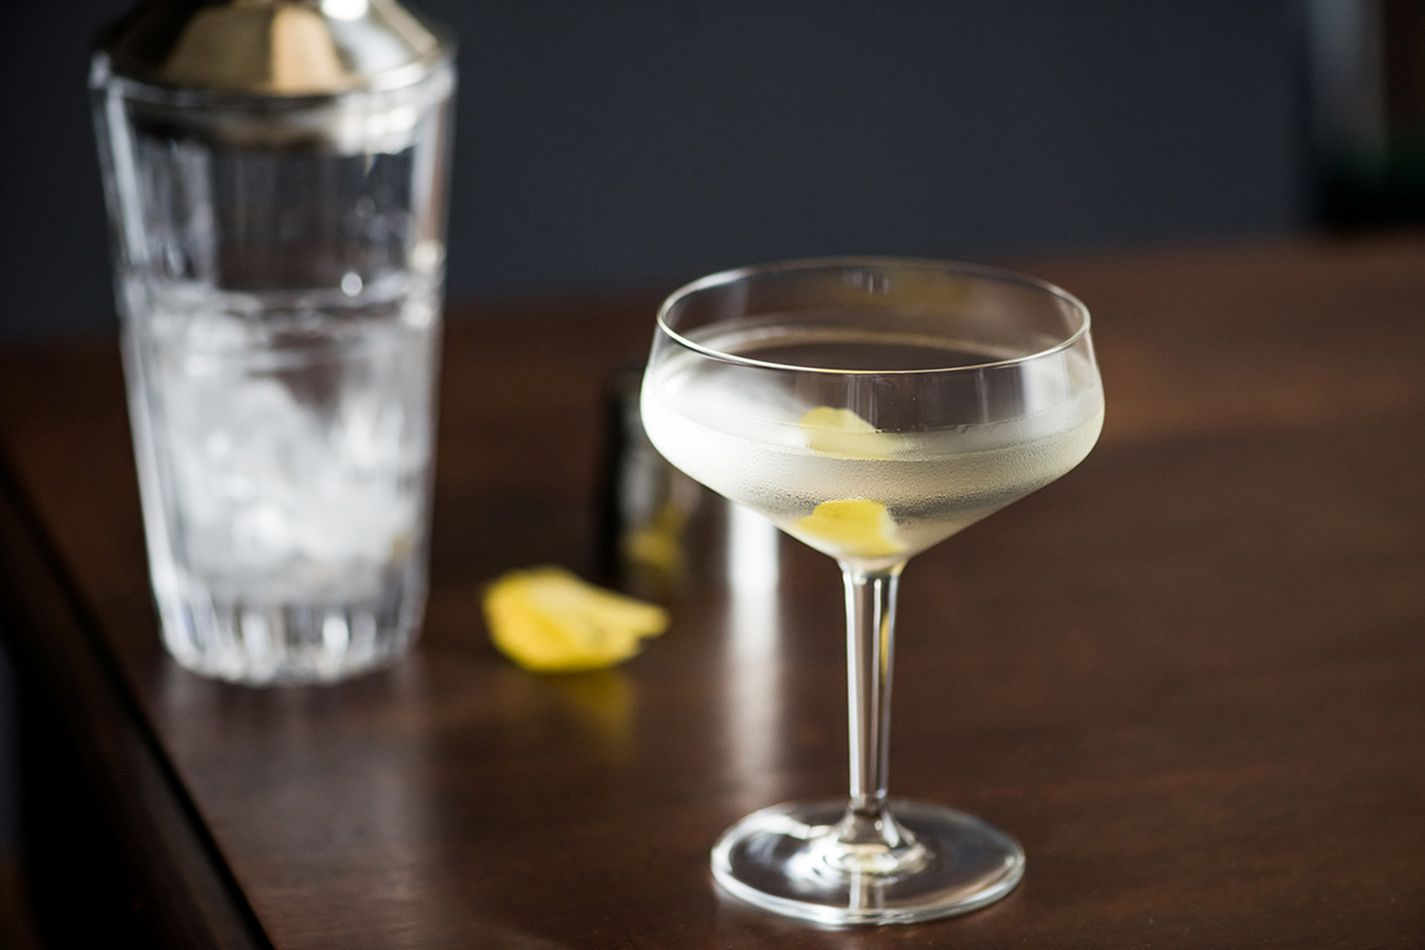 4 CLASSIC COCKTAILS GIRLSSHOULD KNOW HOW TO MAKE